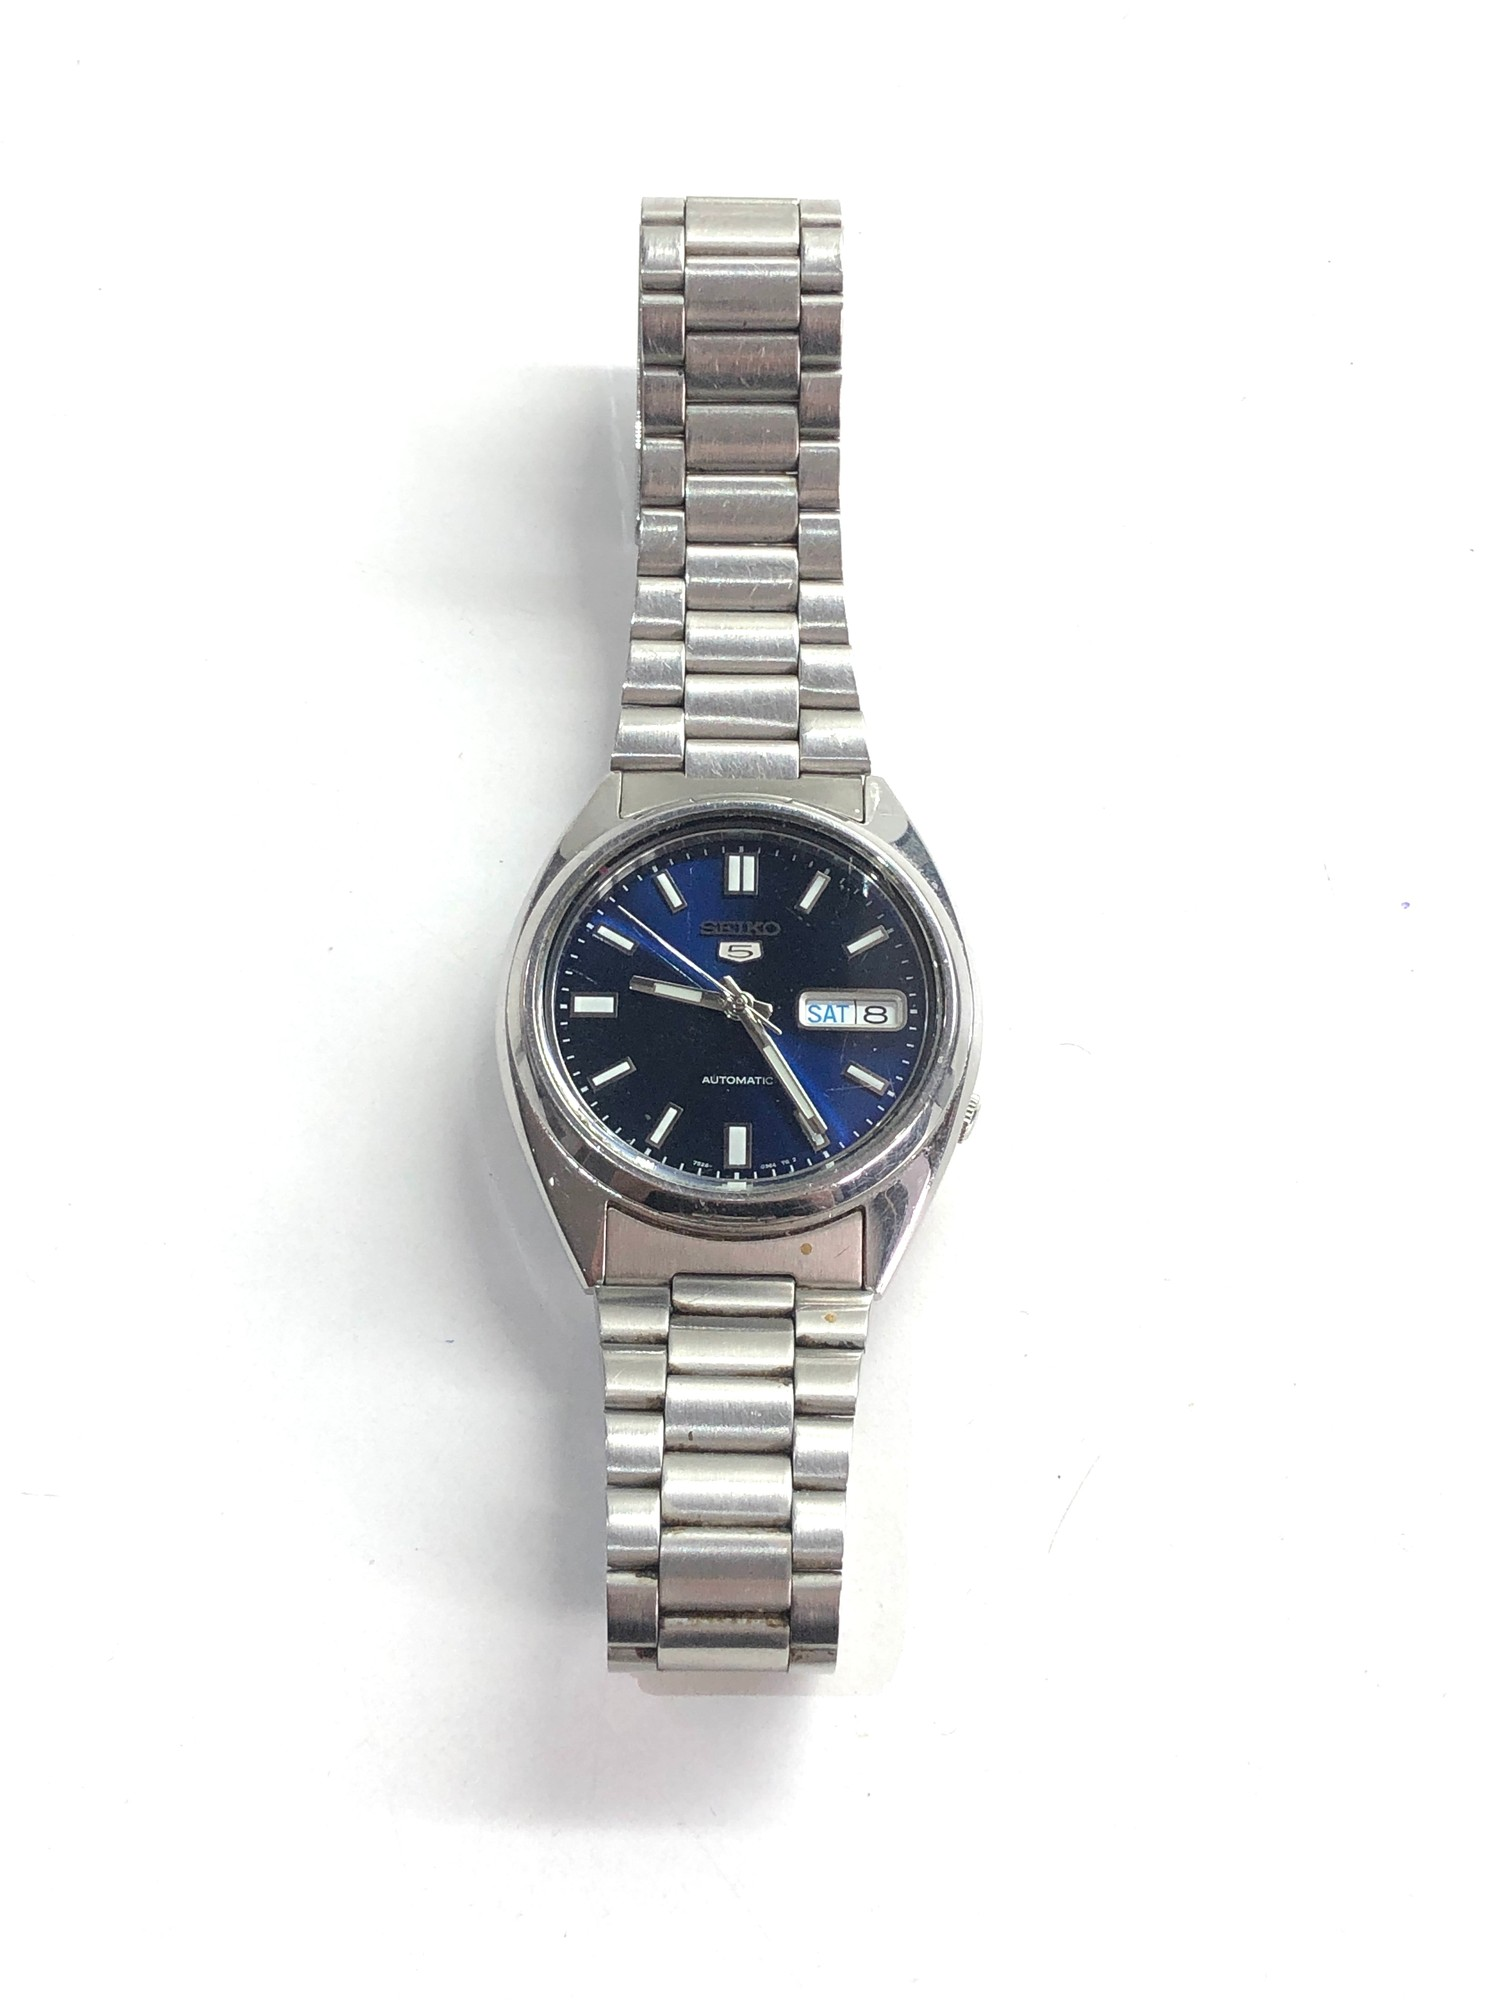 Gents seiko 5 automatic gents wristwatch in working order but no warranty is given 7526-0480